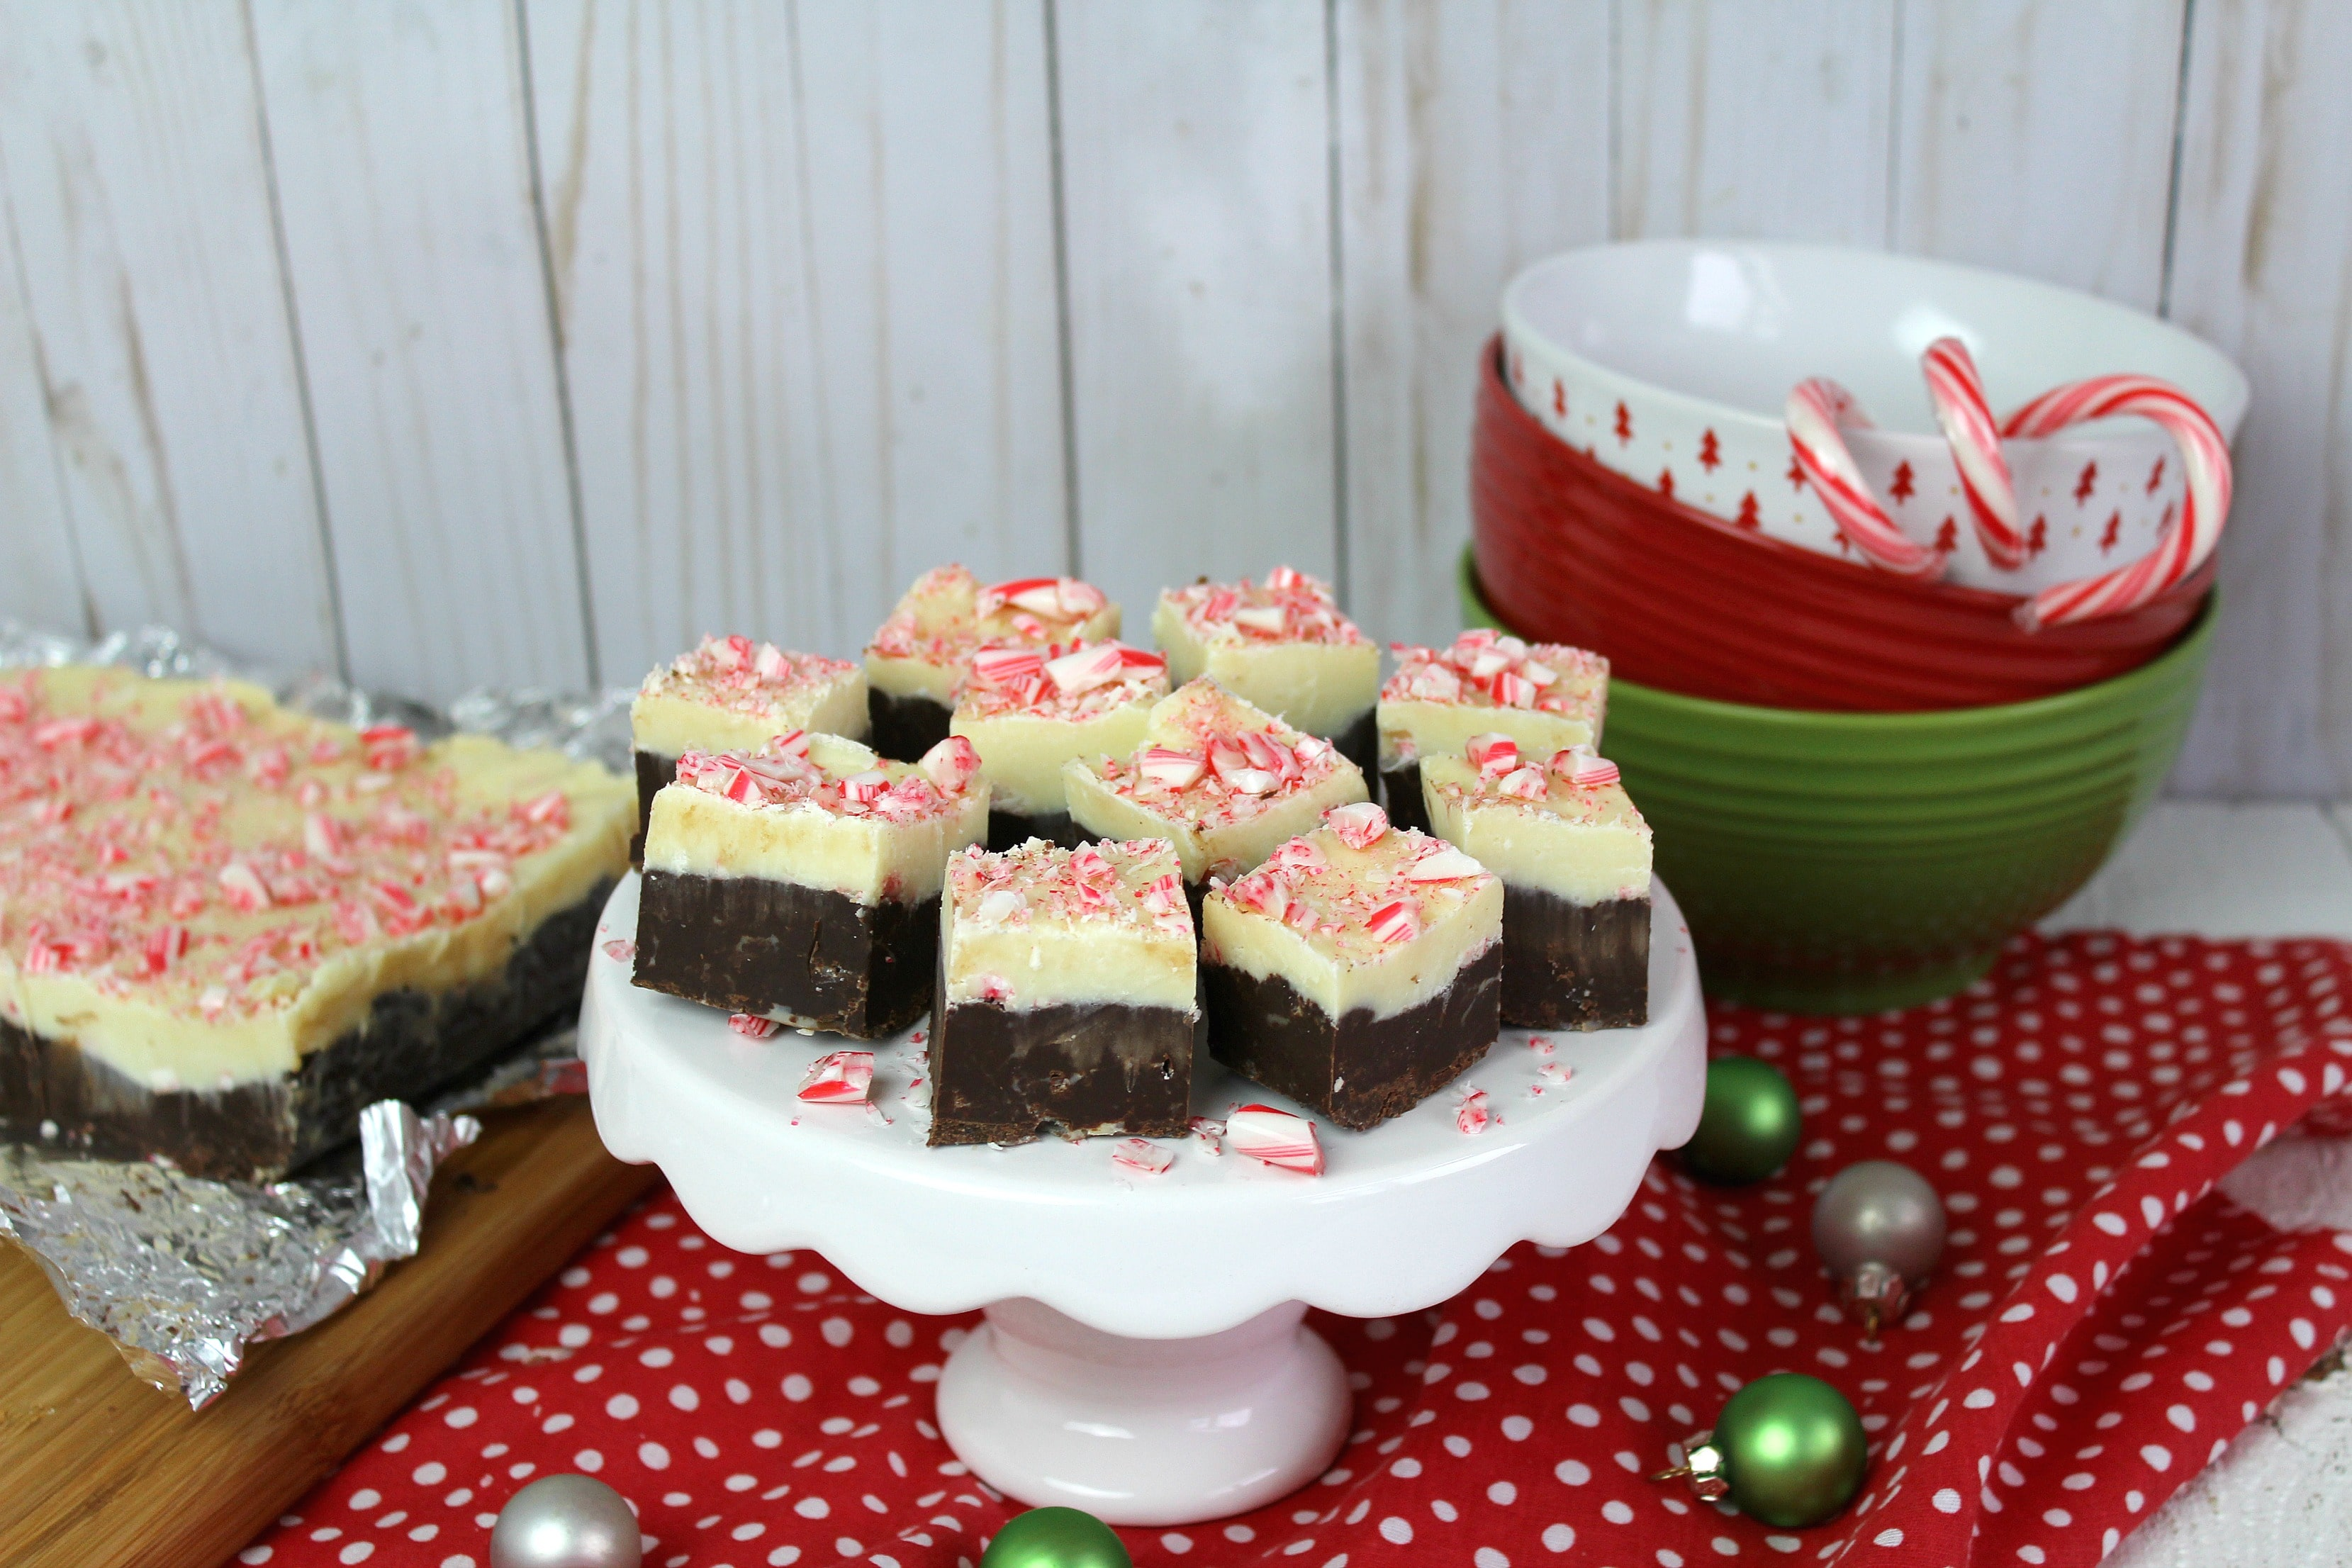 Everyone will love the festive look and delicious taste of Easy Peppermint Bark Fudge!